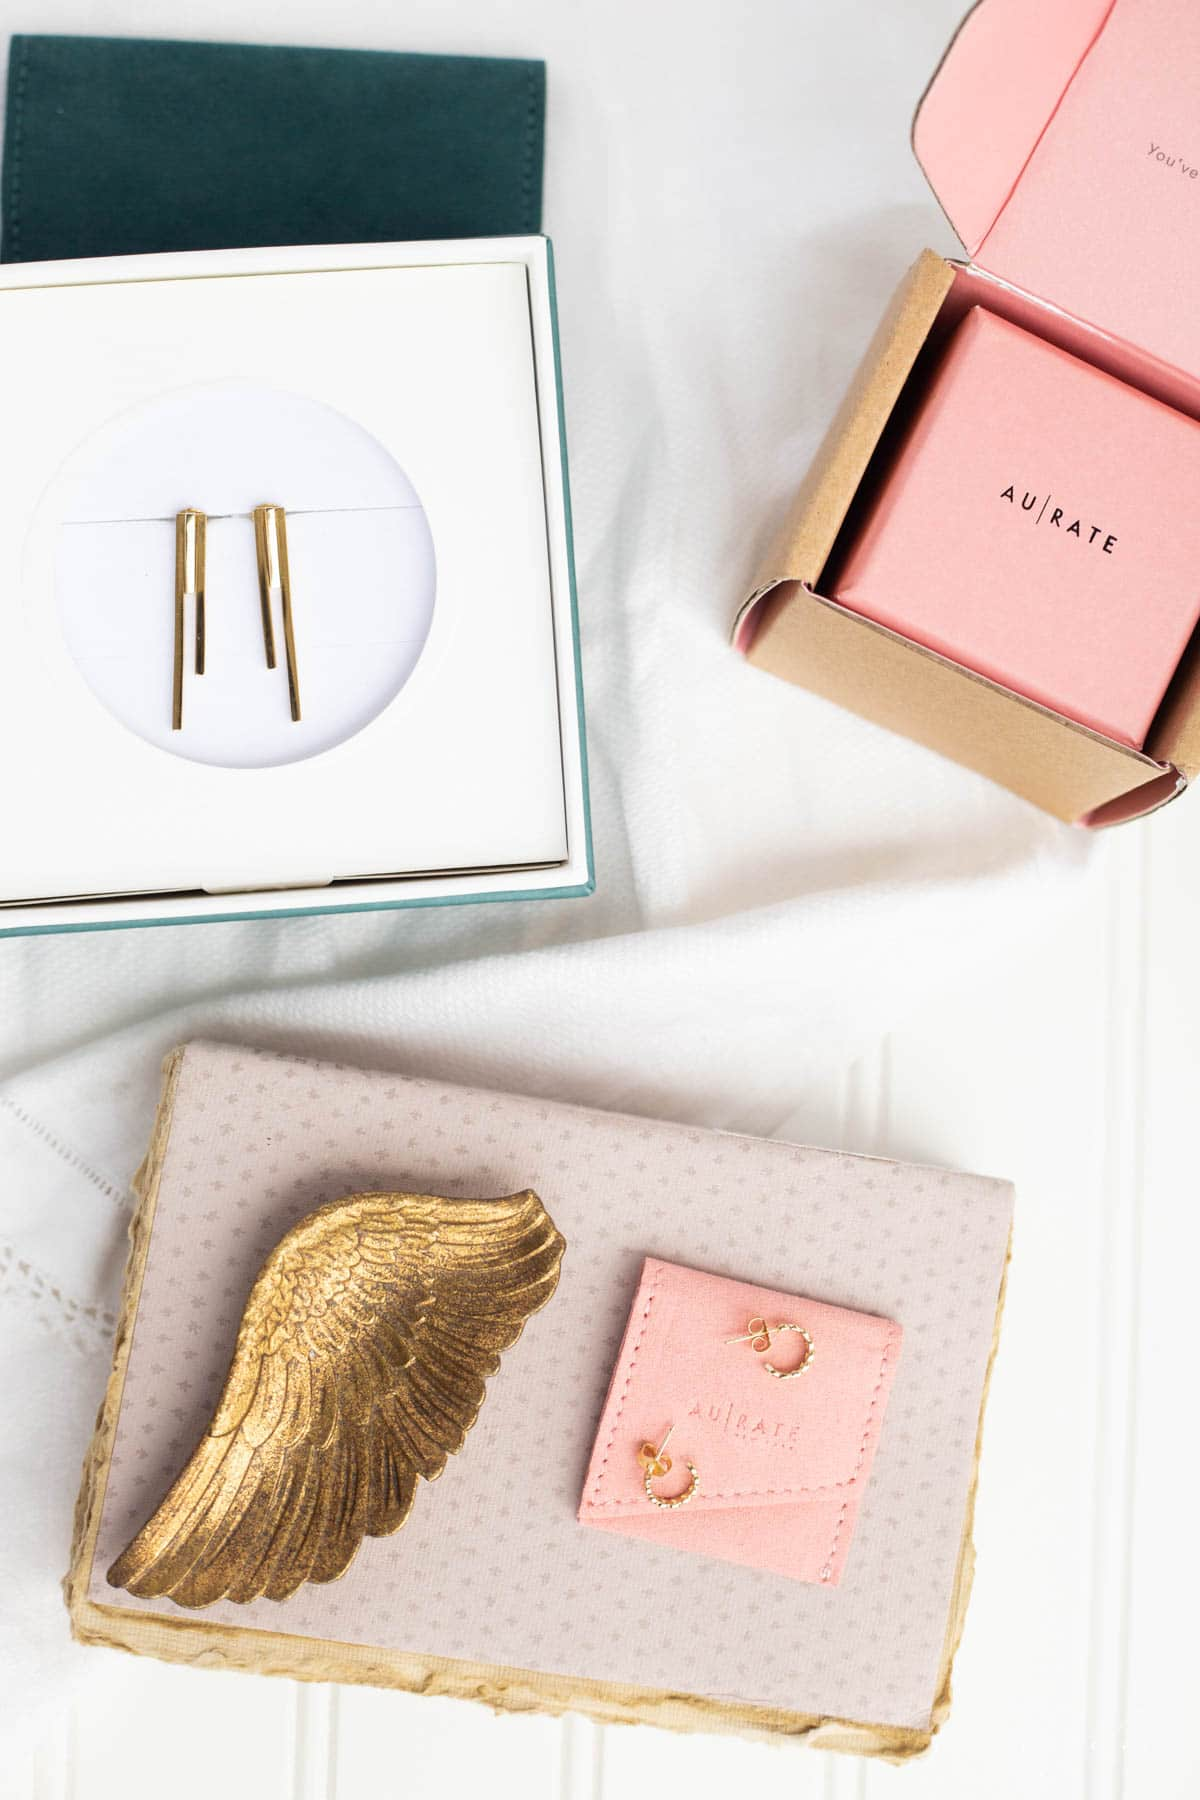 small pink jewelry box, gold bar earrings in a teal jewelry box, small heart gold hoop earrings on a pink suede case with gold angel wing jewelry dish set on a vintage grey book.